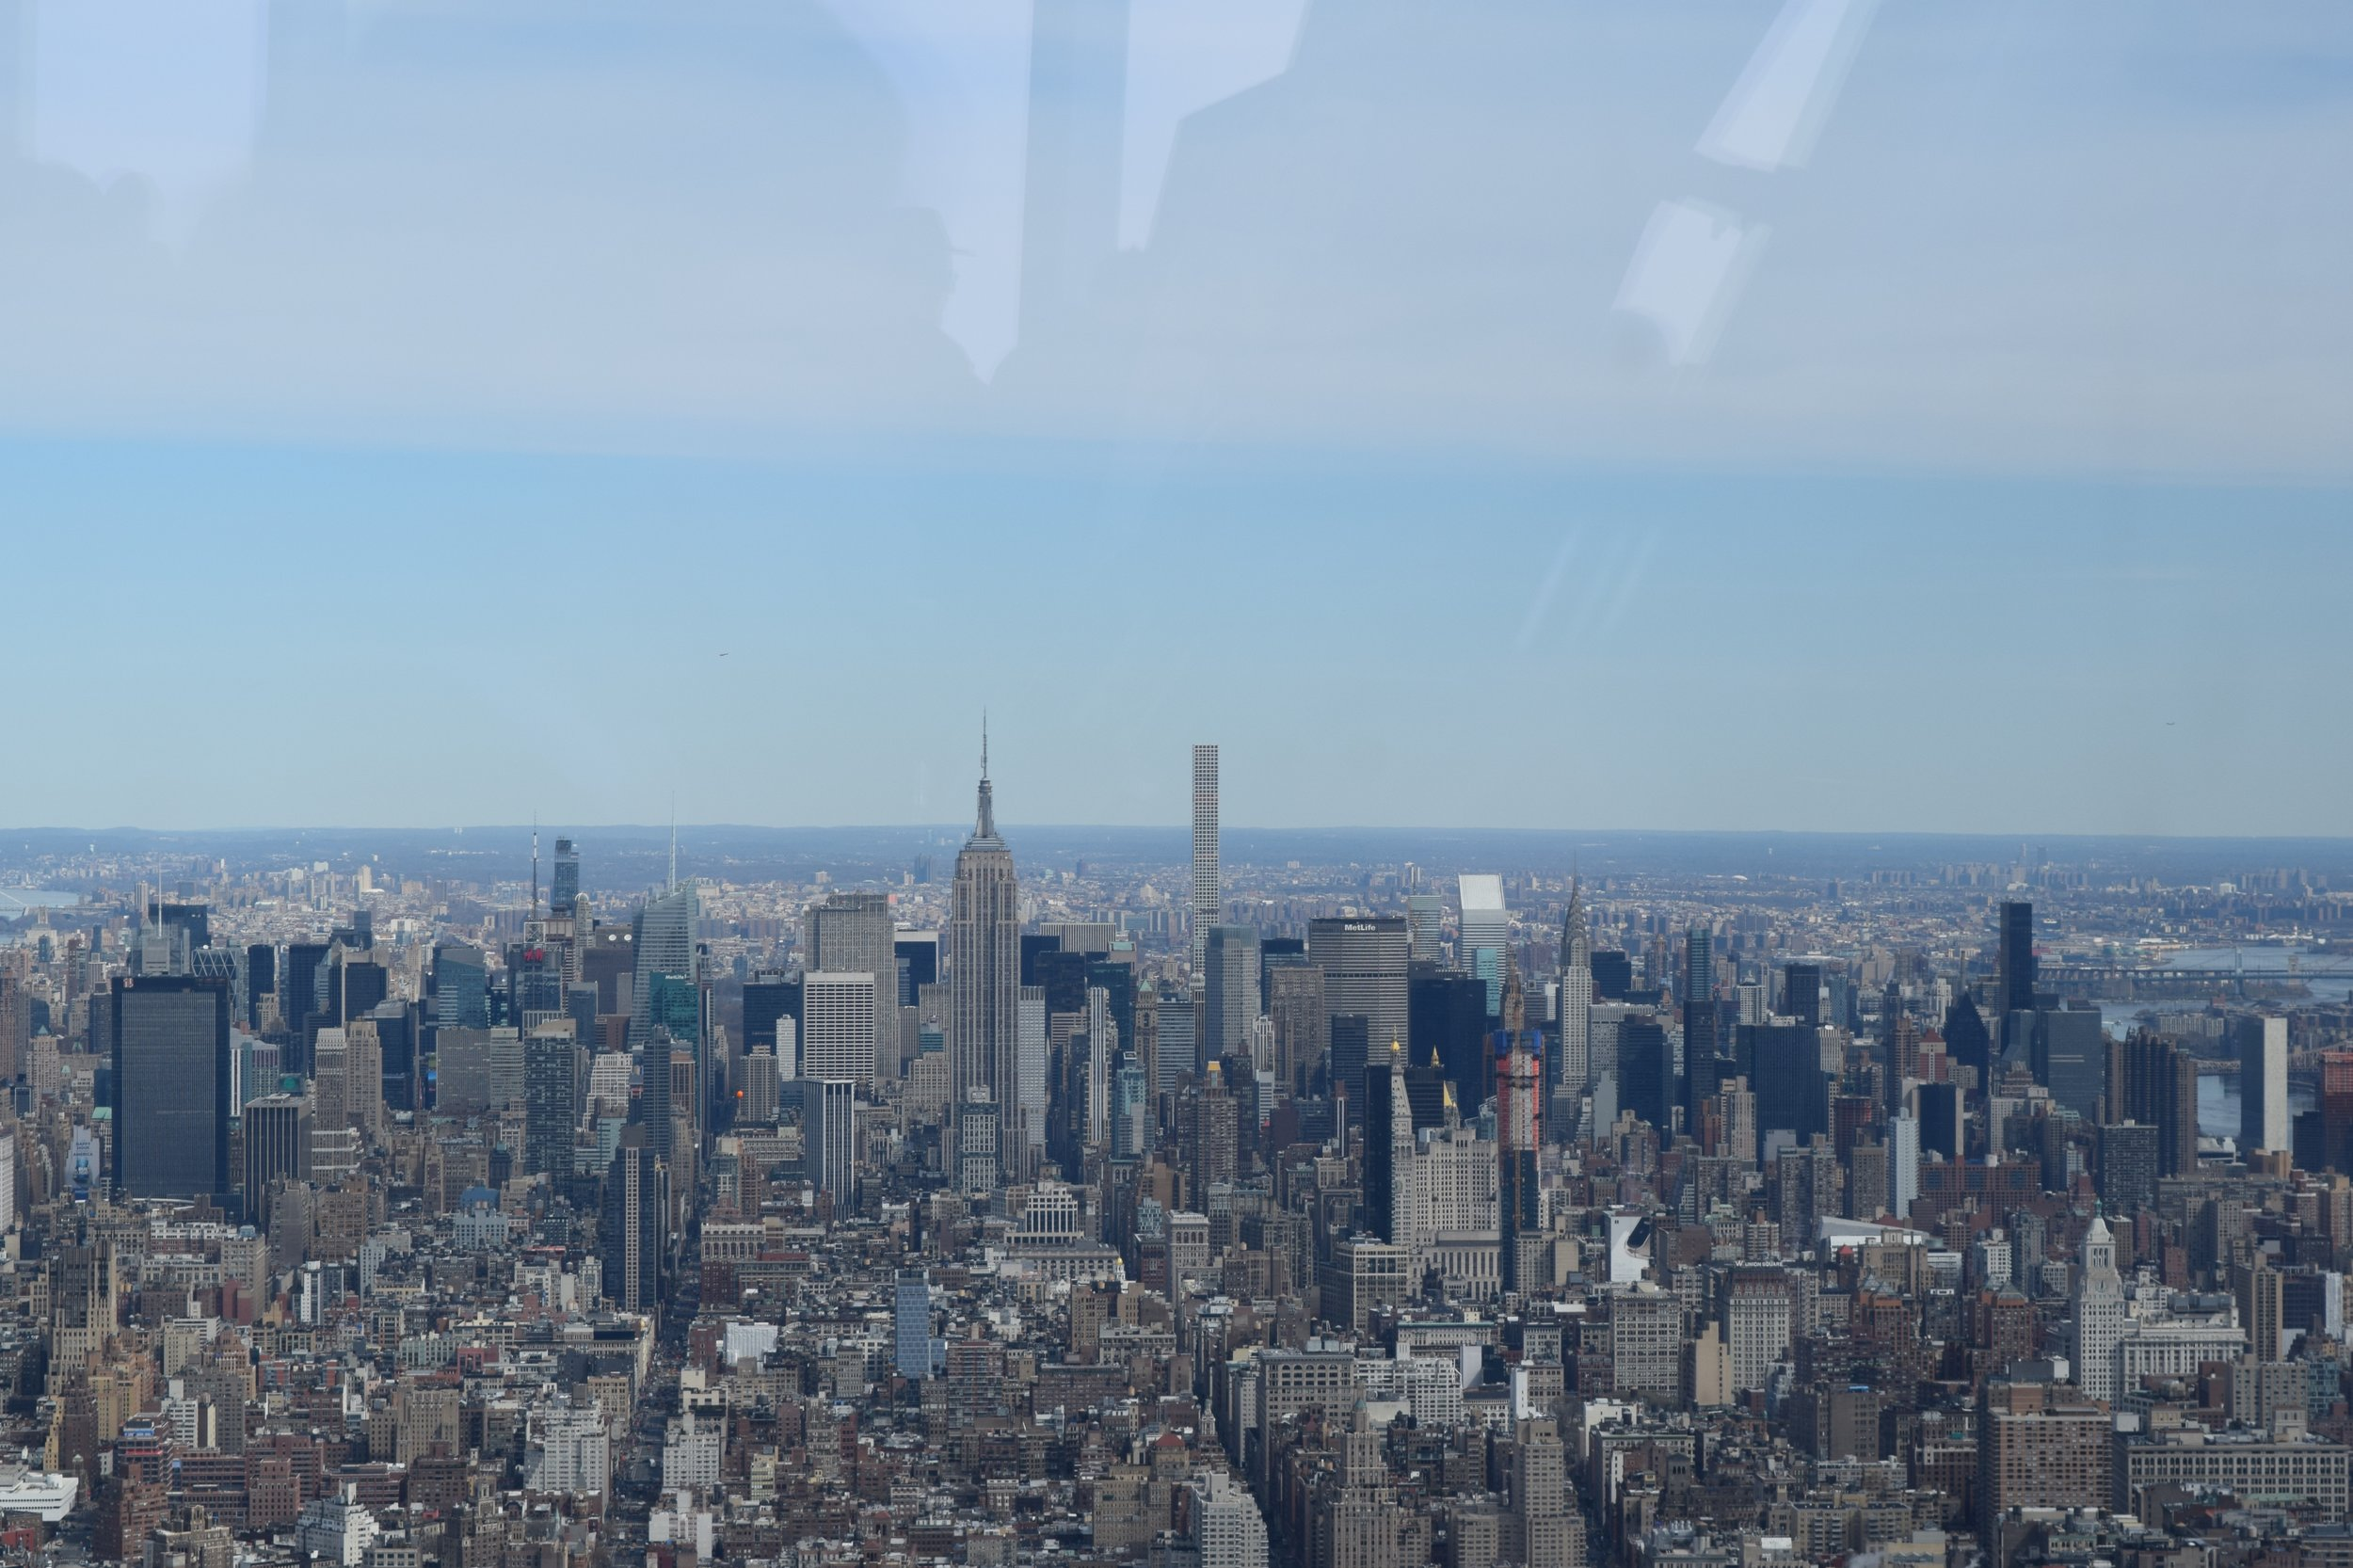 The view from the One World Observatory.